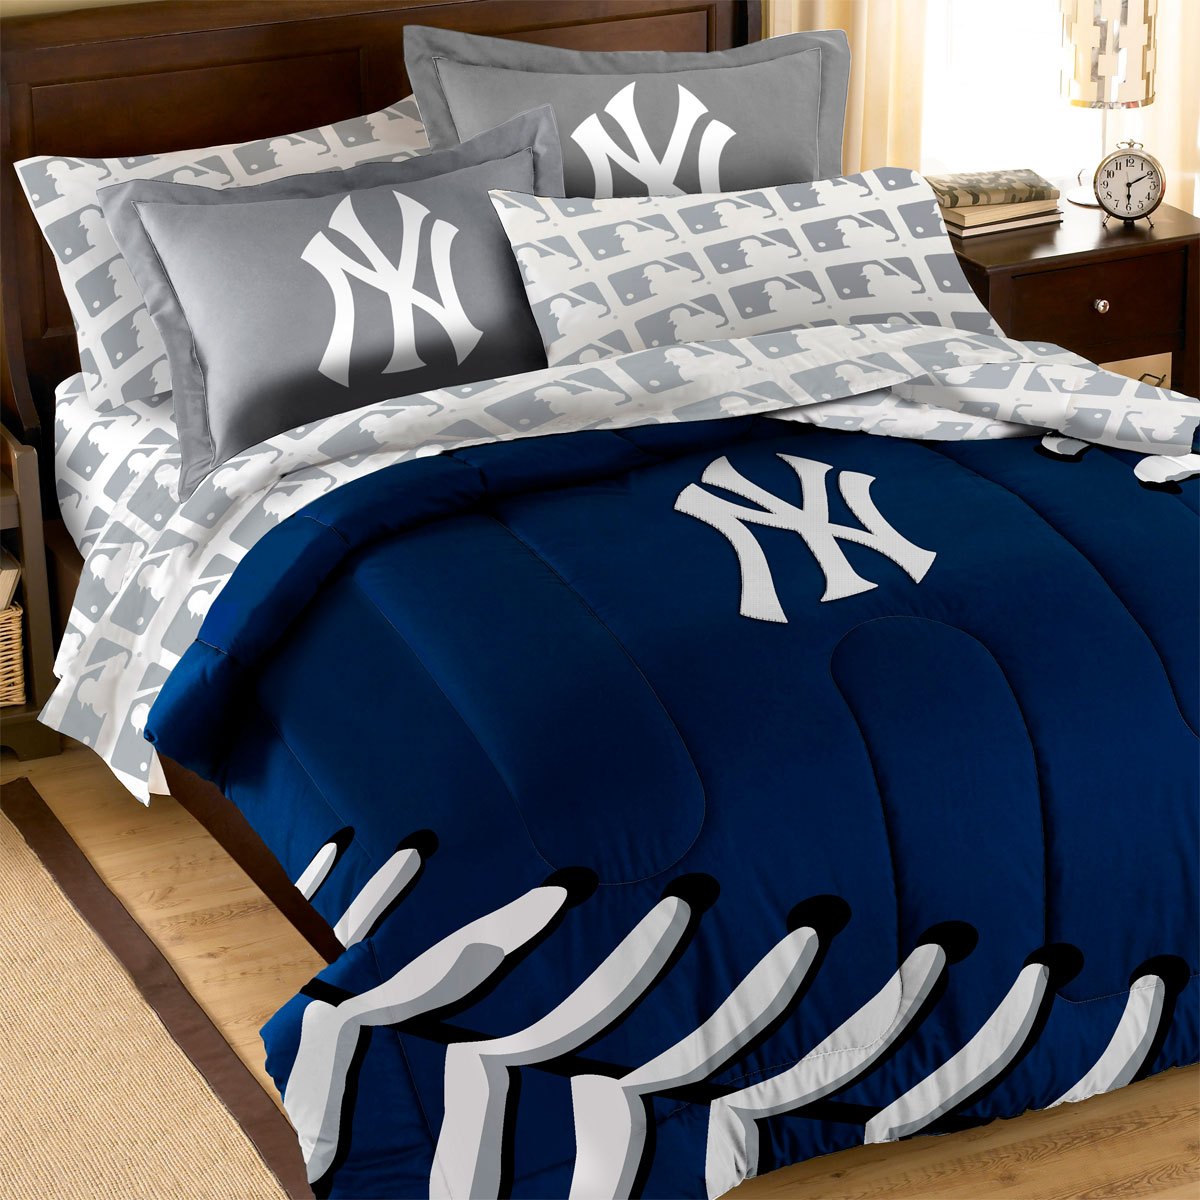 details about 7pc new york yankees full bedding set mlb ny baseball